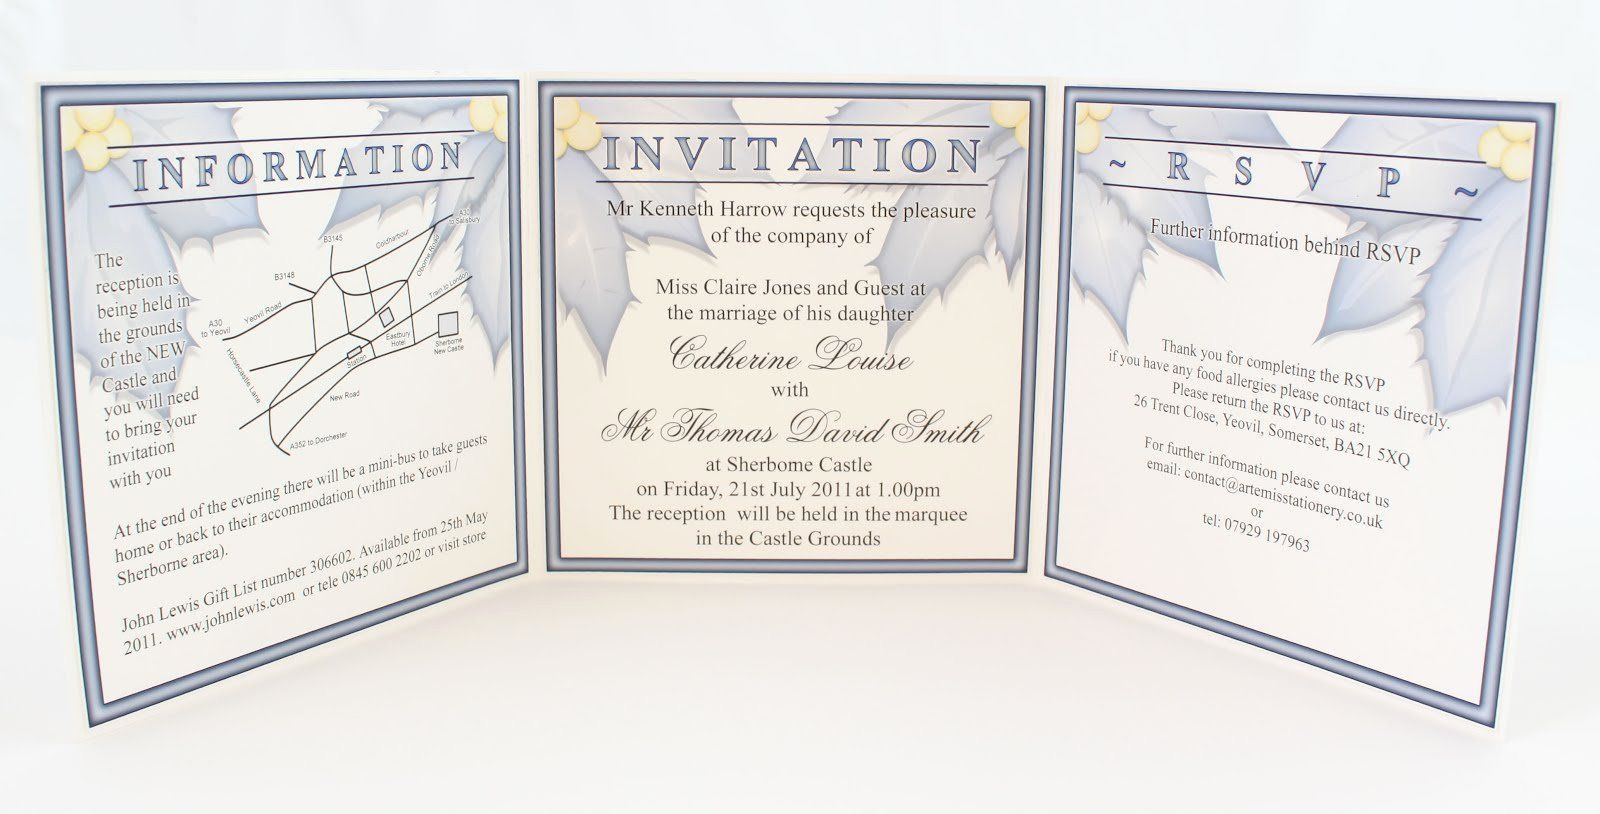 005 Archaicawful Microsoft Word Invitation Template 2 Per Page Image Full